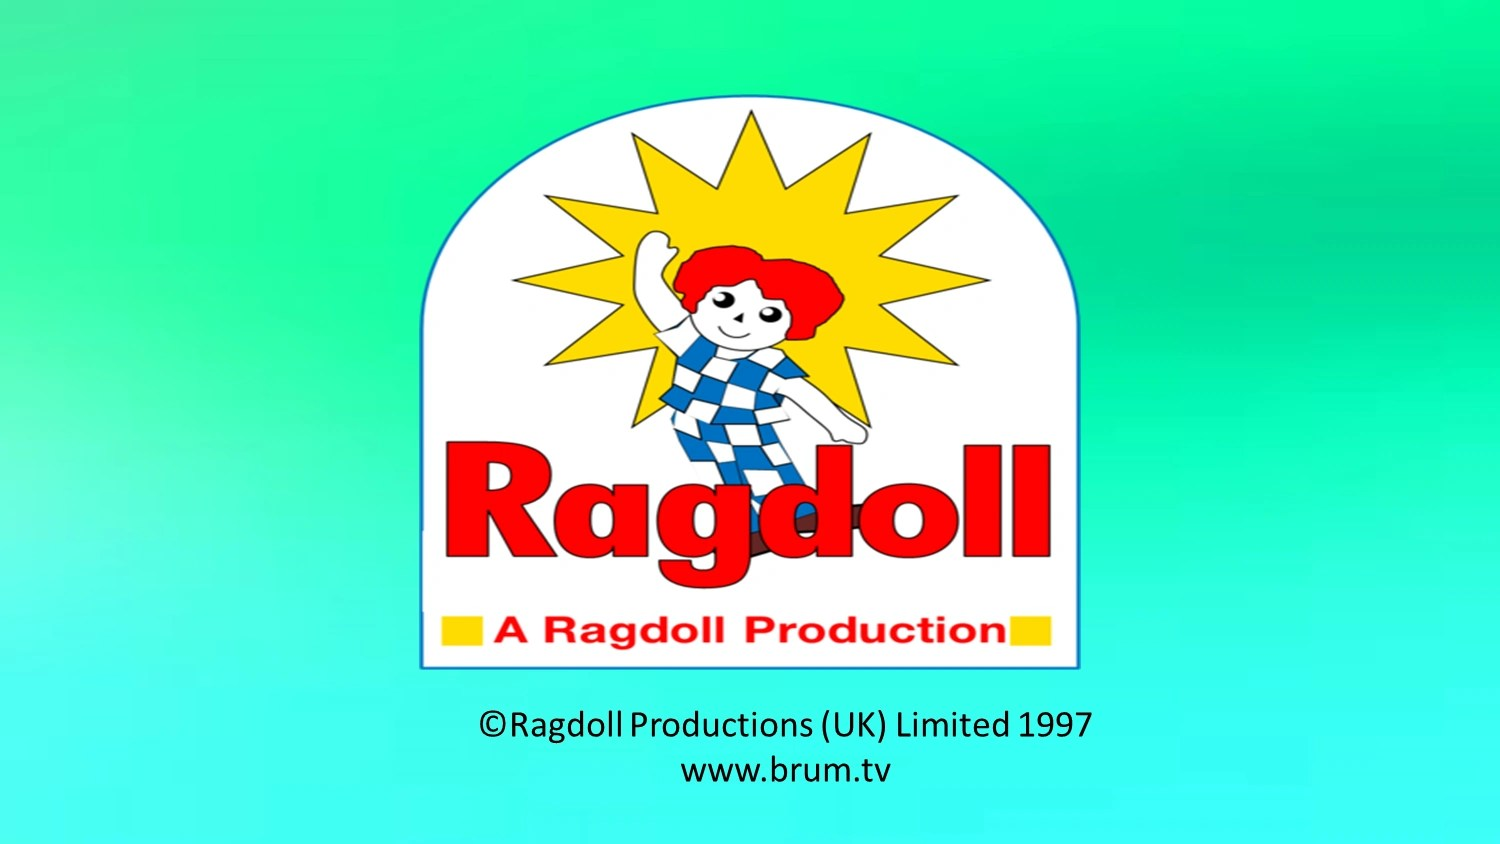 20 Ragdoll Logo History Pictures And Ideas On Meta Networks